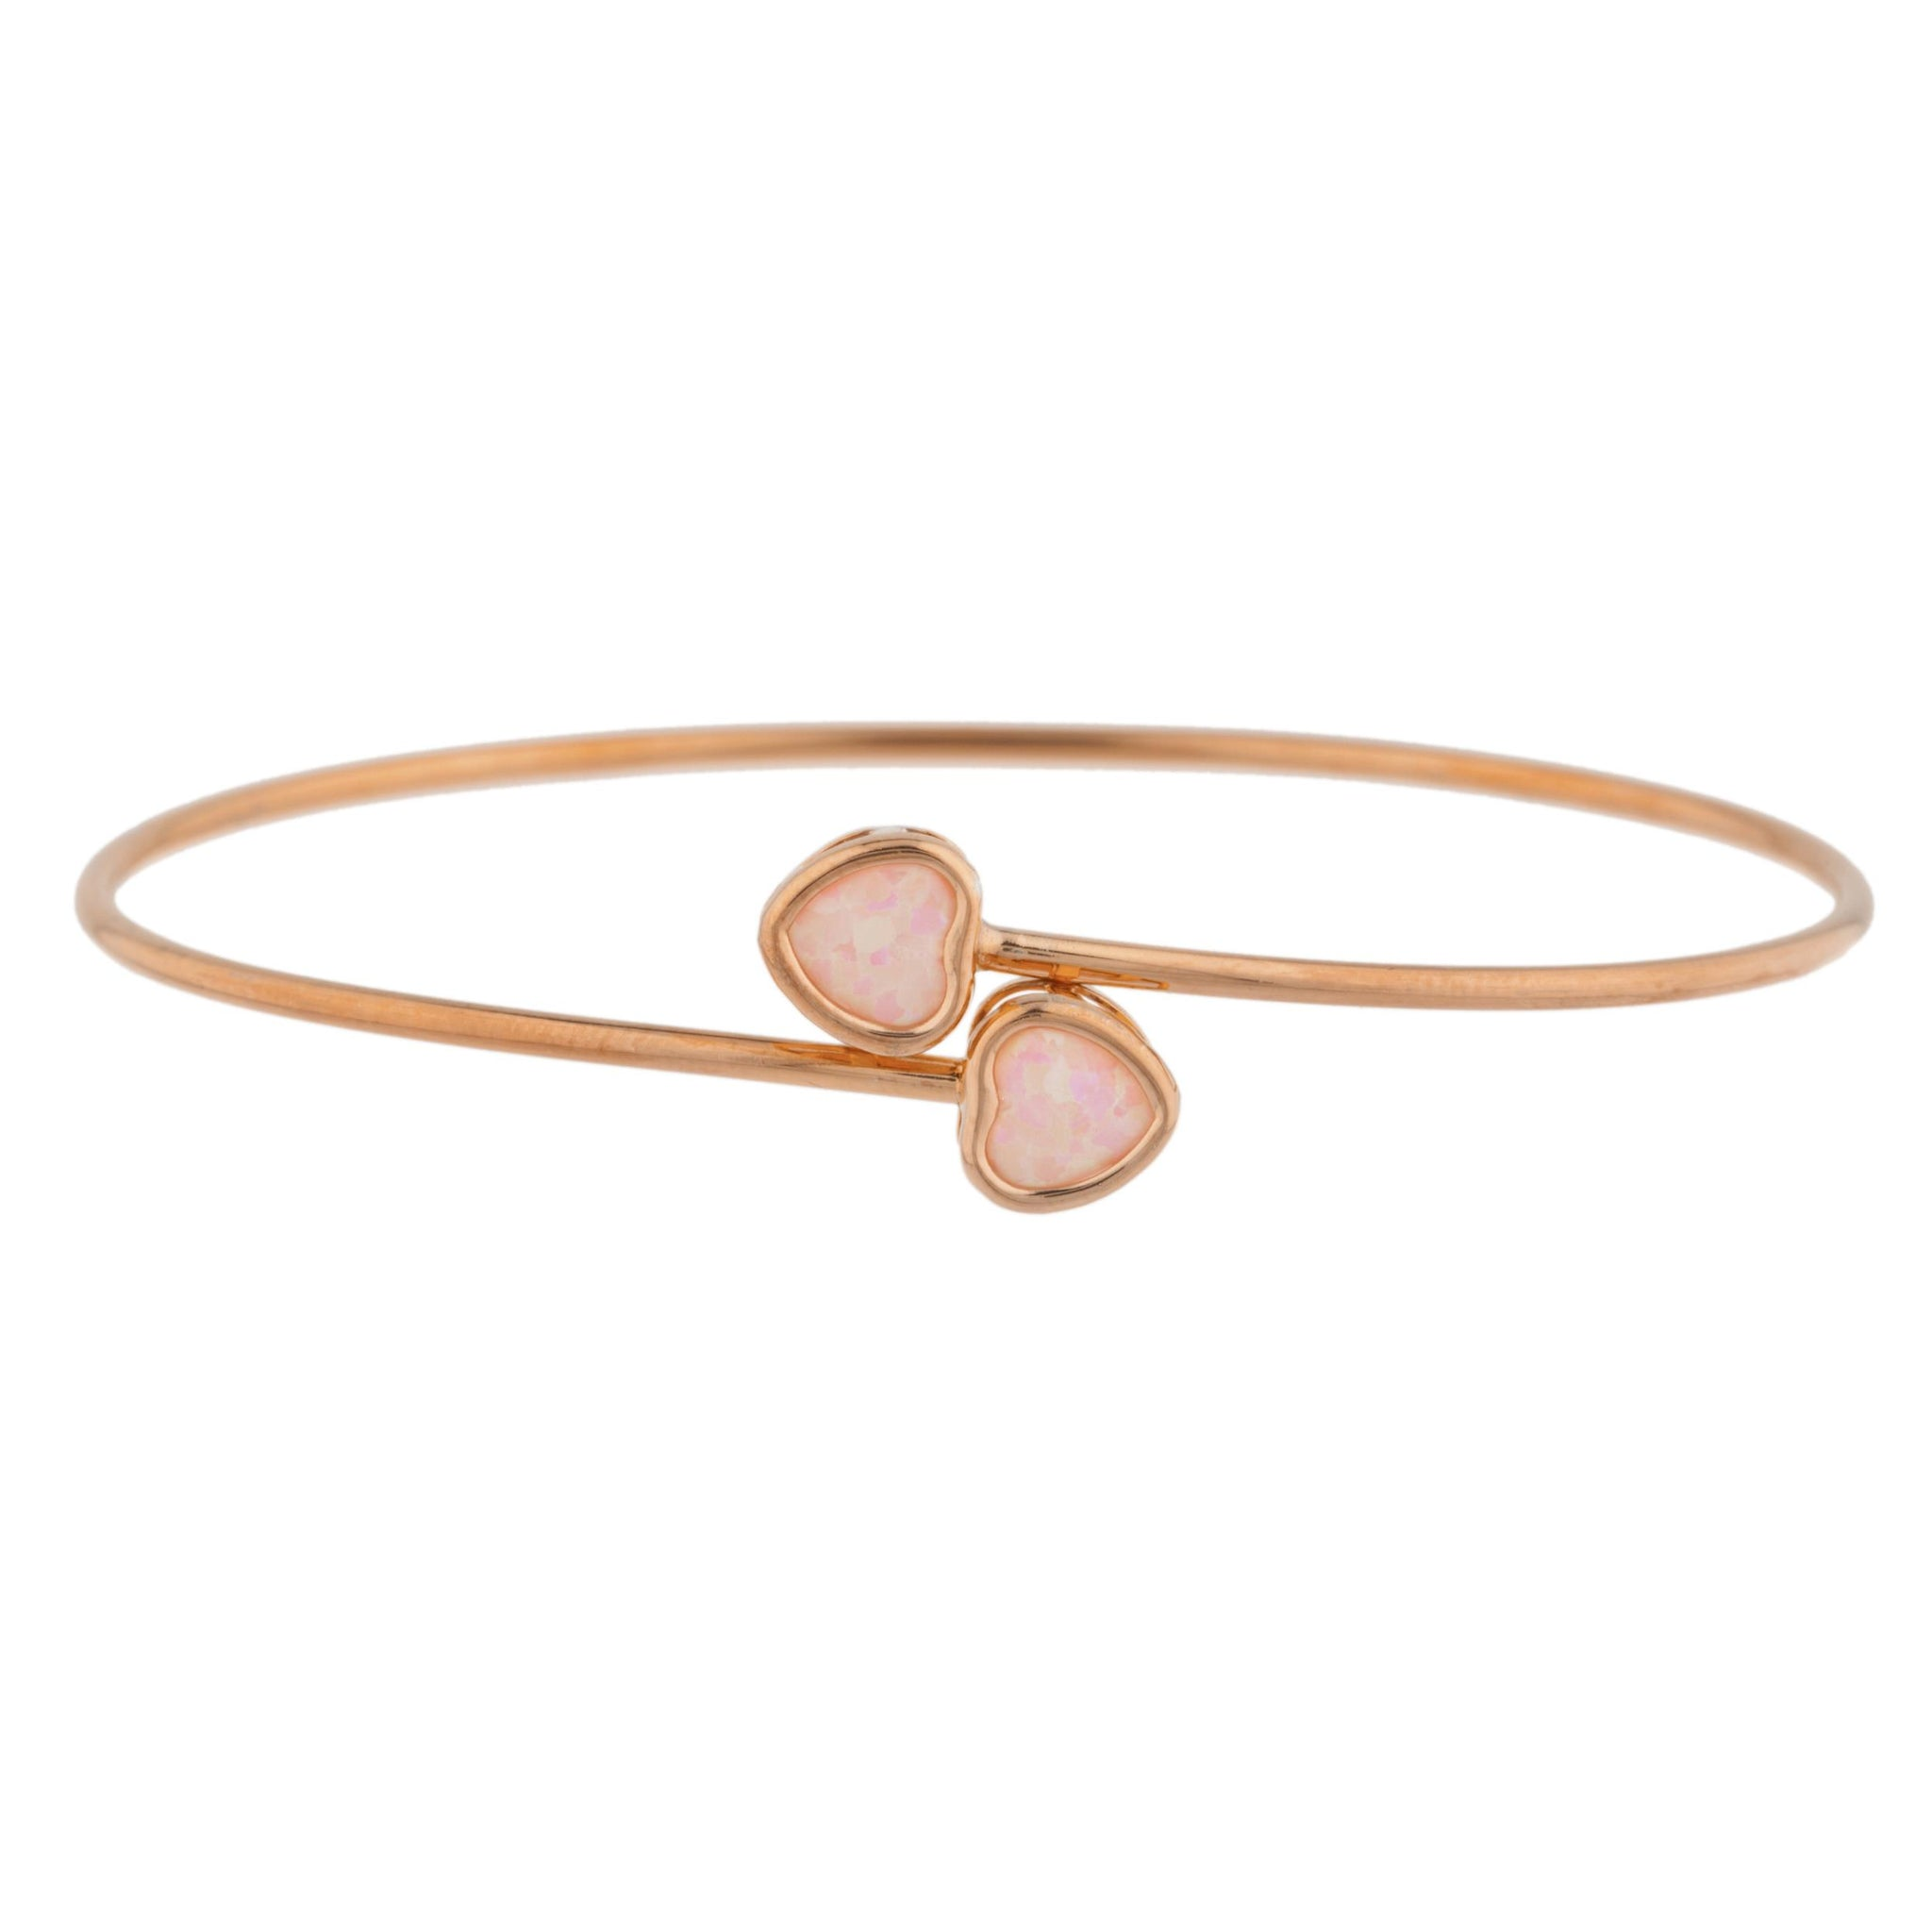 14Kt Rose Gold Plated Pink Opal Heart Bezel Bangle Bracelet